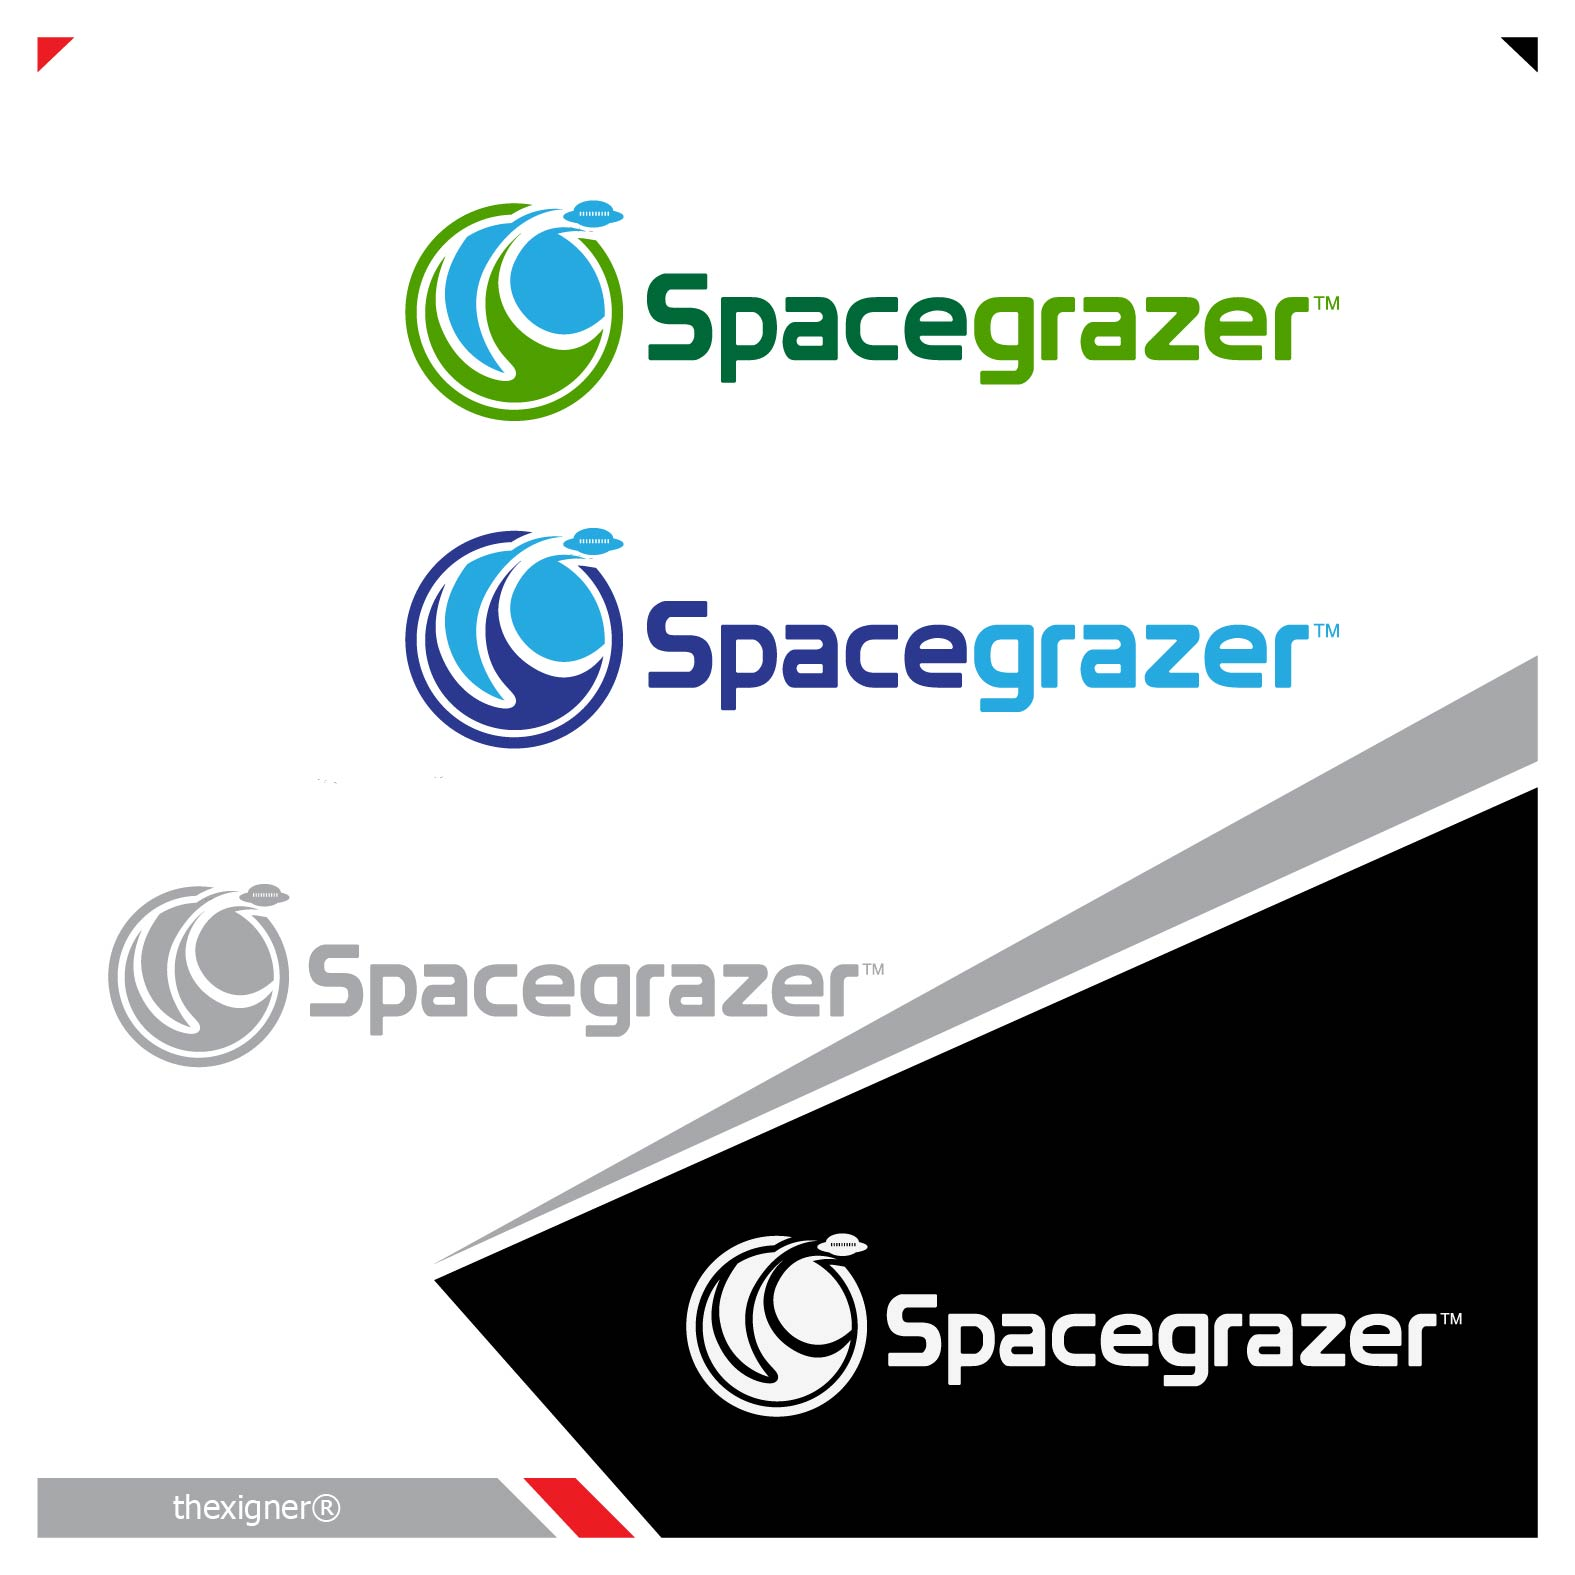 Logo Design by lagalag - Entry No. 154 in the Logo Design Contest Fun Logo Design for Spacegrazer.